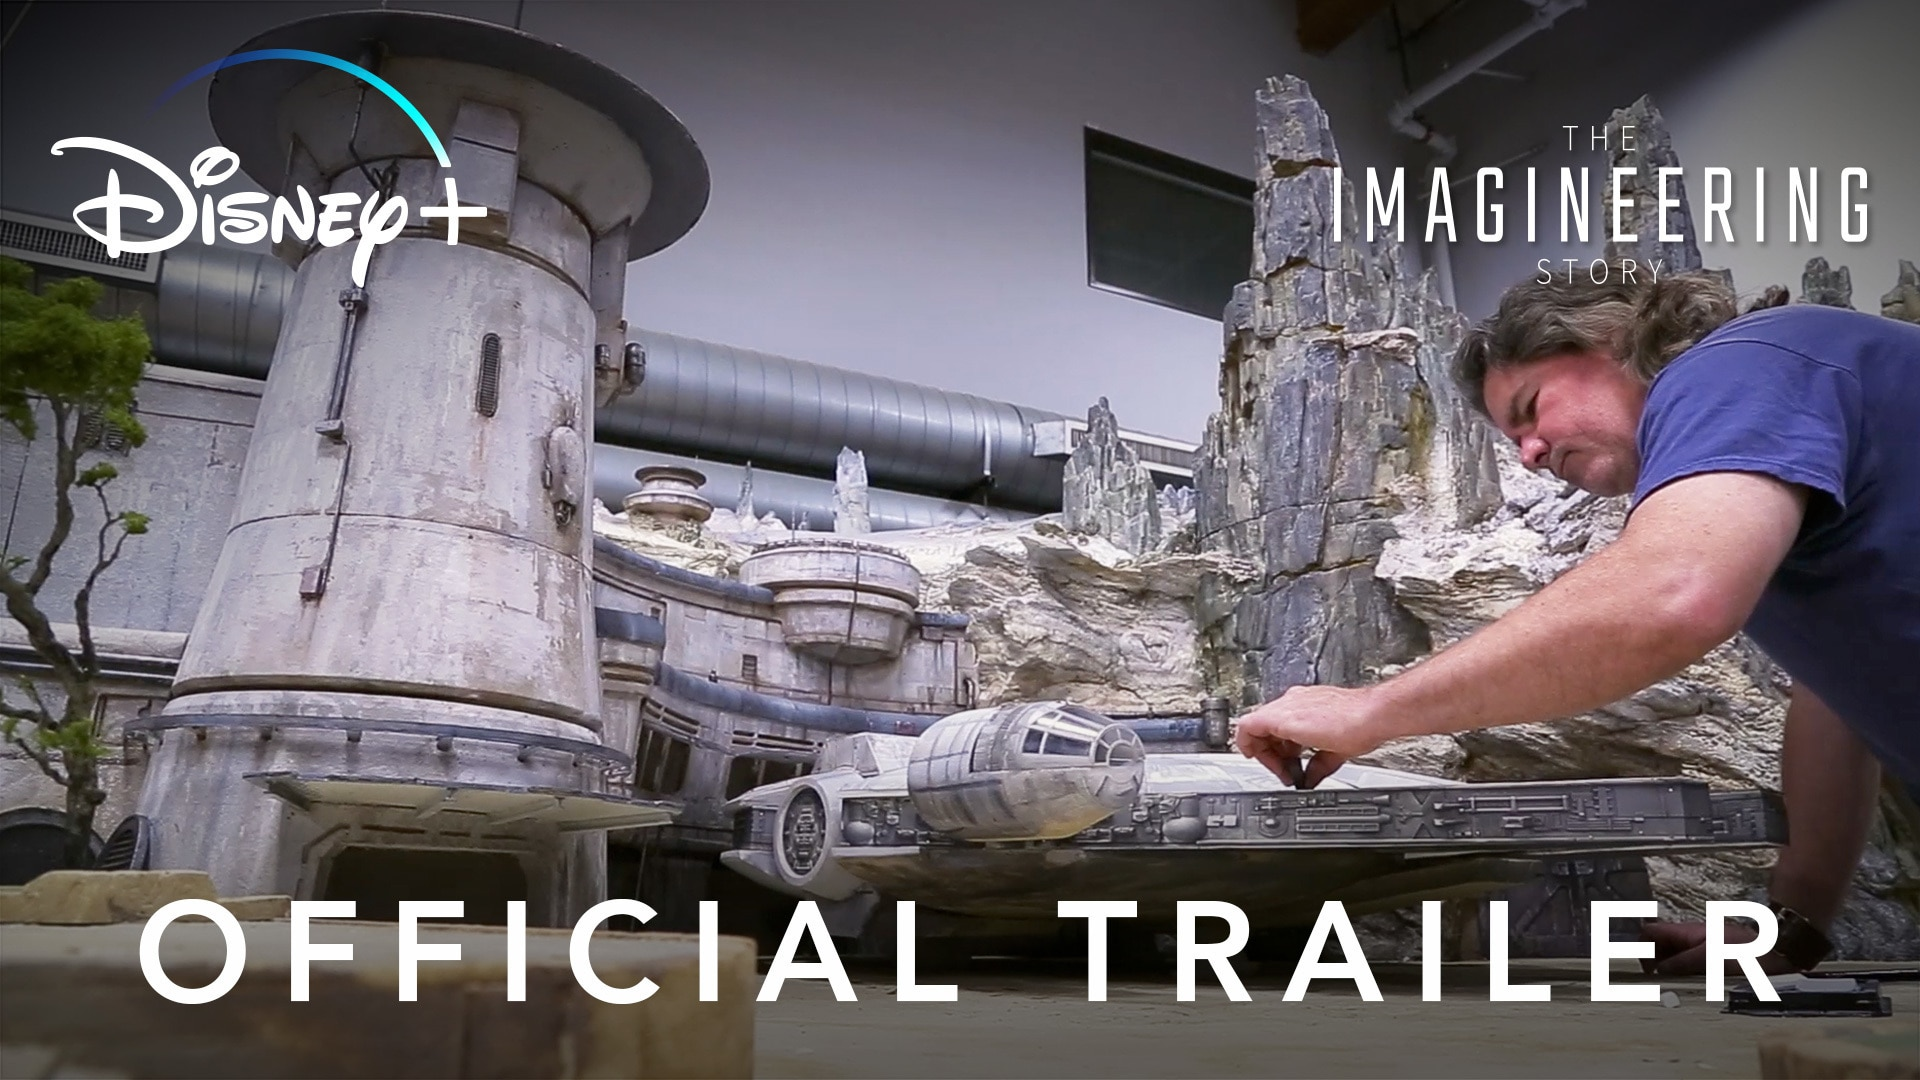 The Imagineering Story | Official Trailer | Disney+ | Streaming Nov. 12